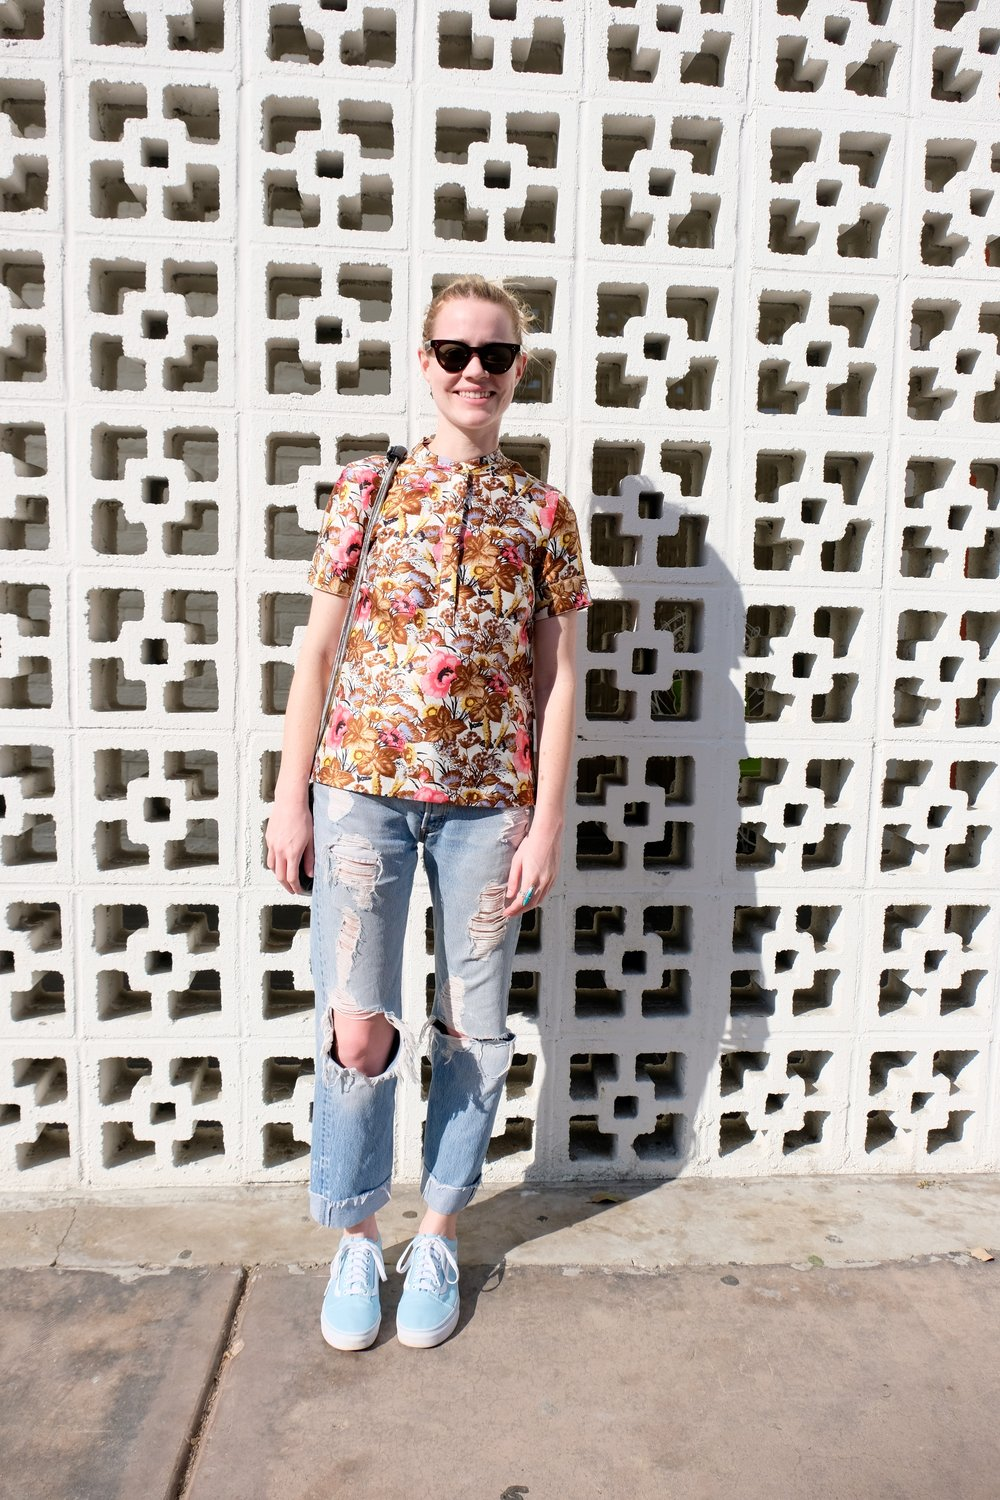 Celine  wayfarer sunglasses,  J.Crew Collection  top,  Re/Done  vintage Levi's and  Vans Old School  sneakers in ice blue.